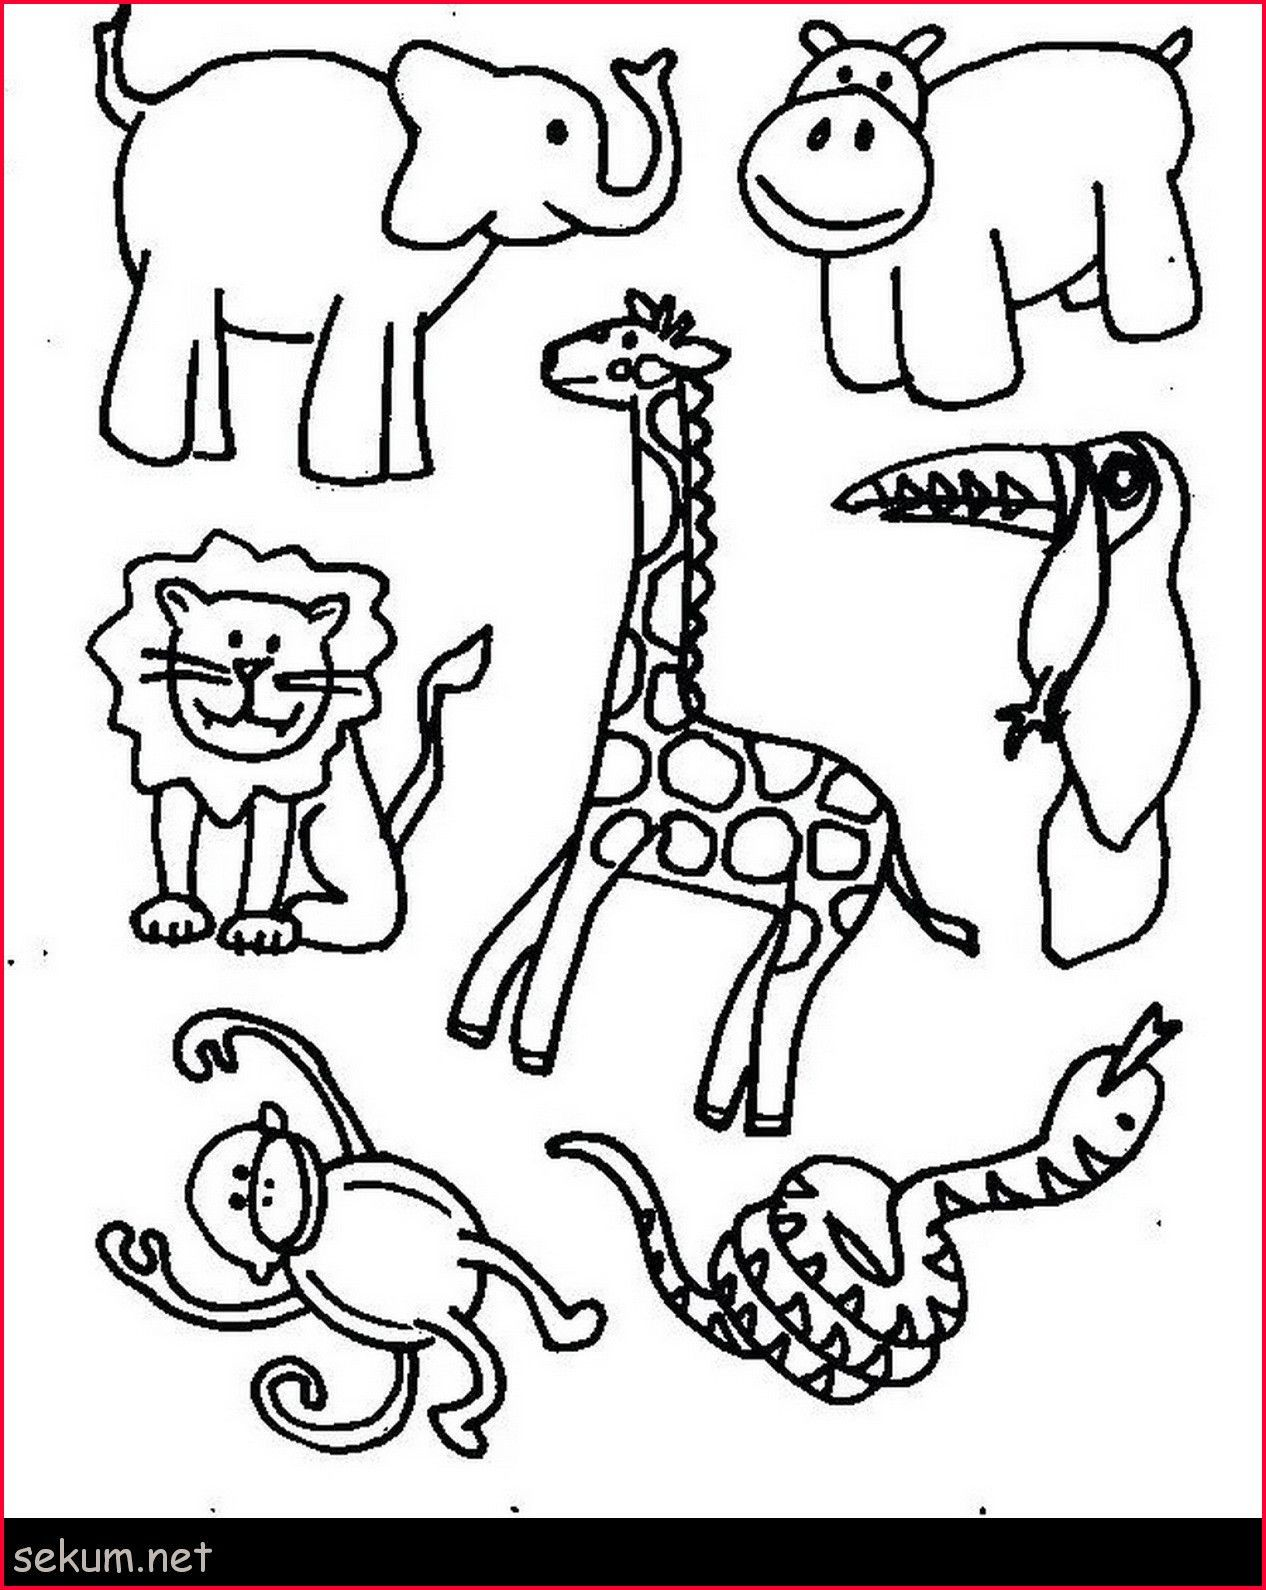 Jungle Animal Coloring Pages Printable Jungle Animal Coloring Pages 254909 Animal Coloring Pages Entitlementtrap Com Zoo Animal Coloring Pages Jungle Coloring Pages Zoo Coloring Pages